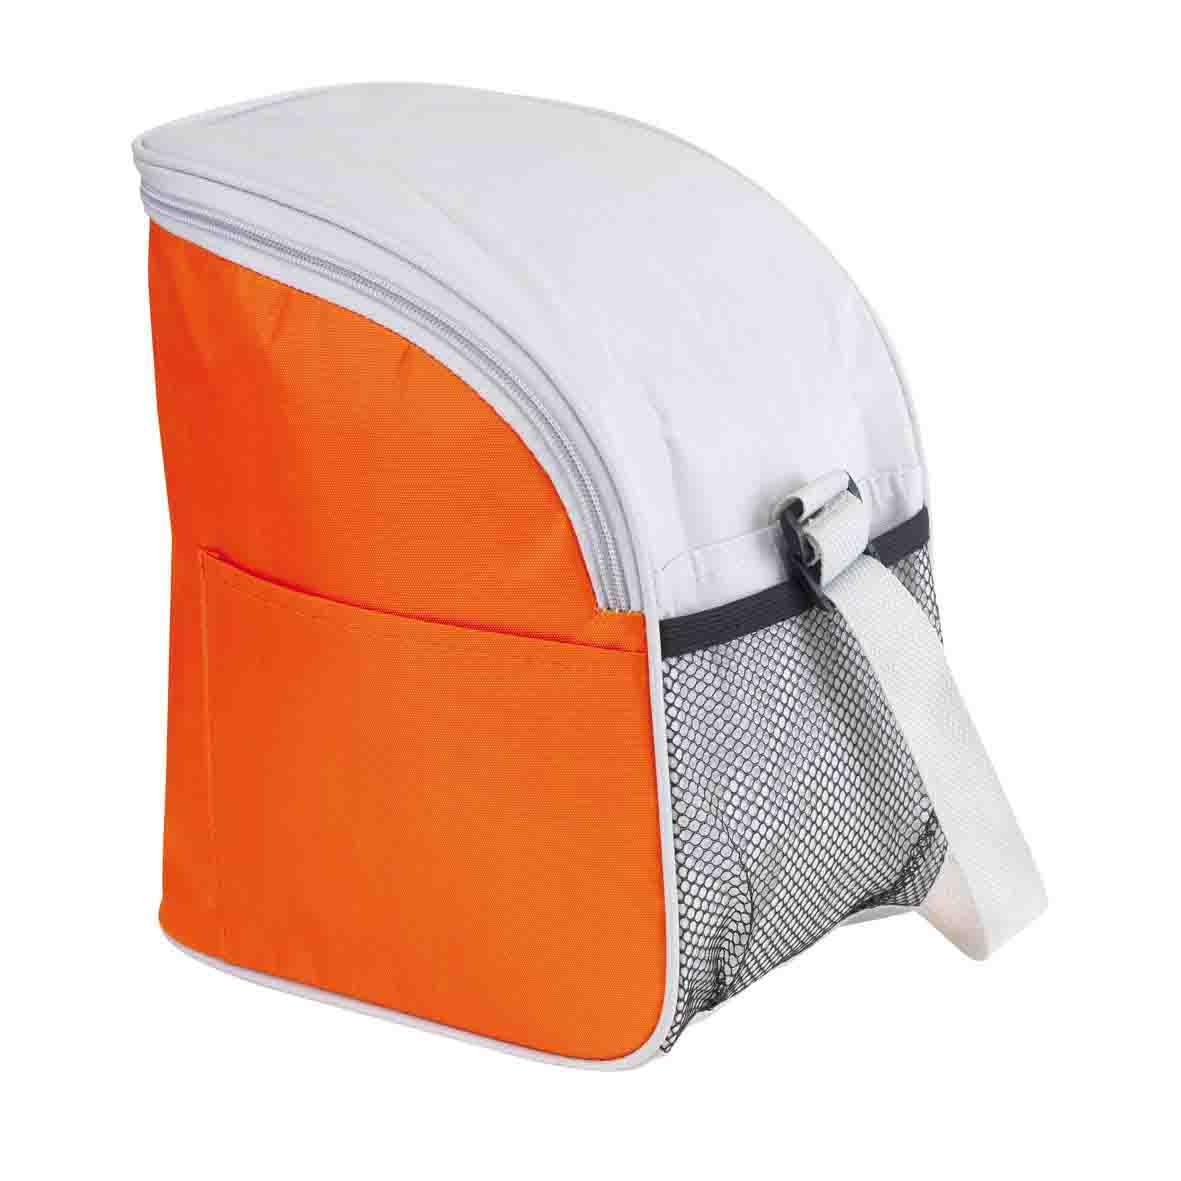 Cooler bag 'Glacial' - Orange ins-0801143